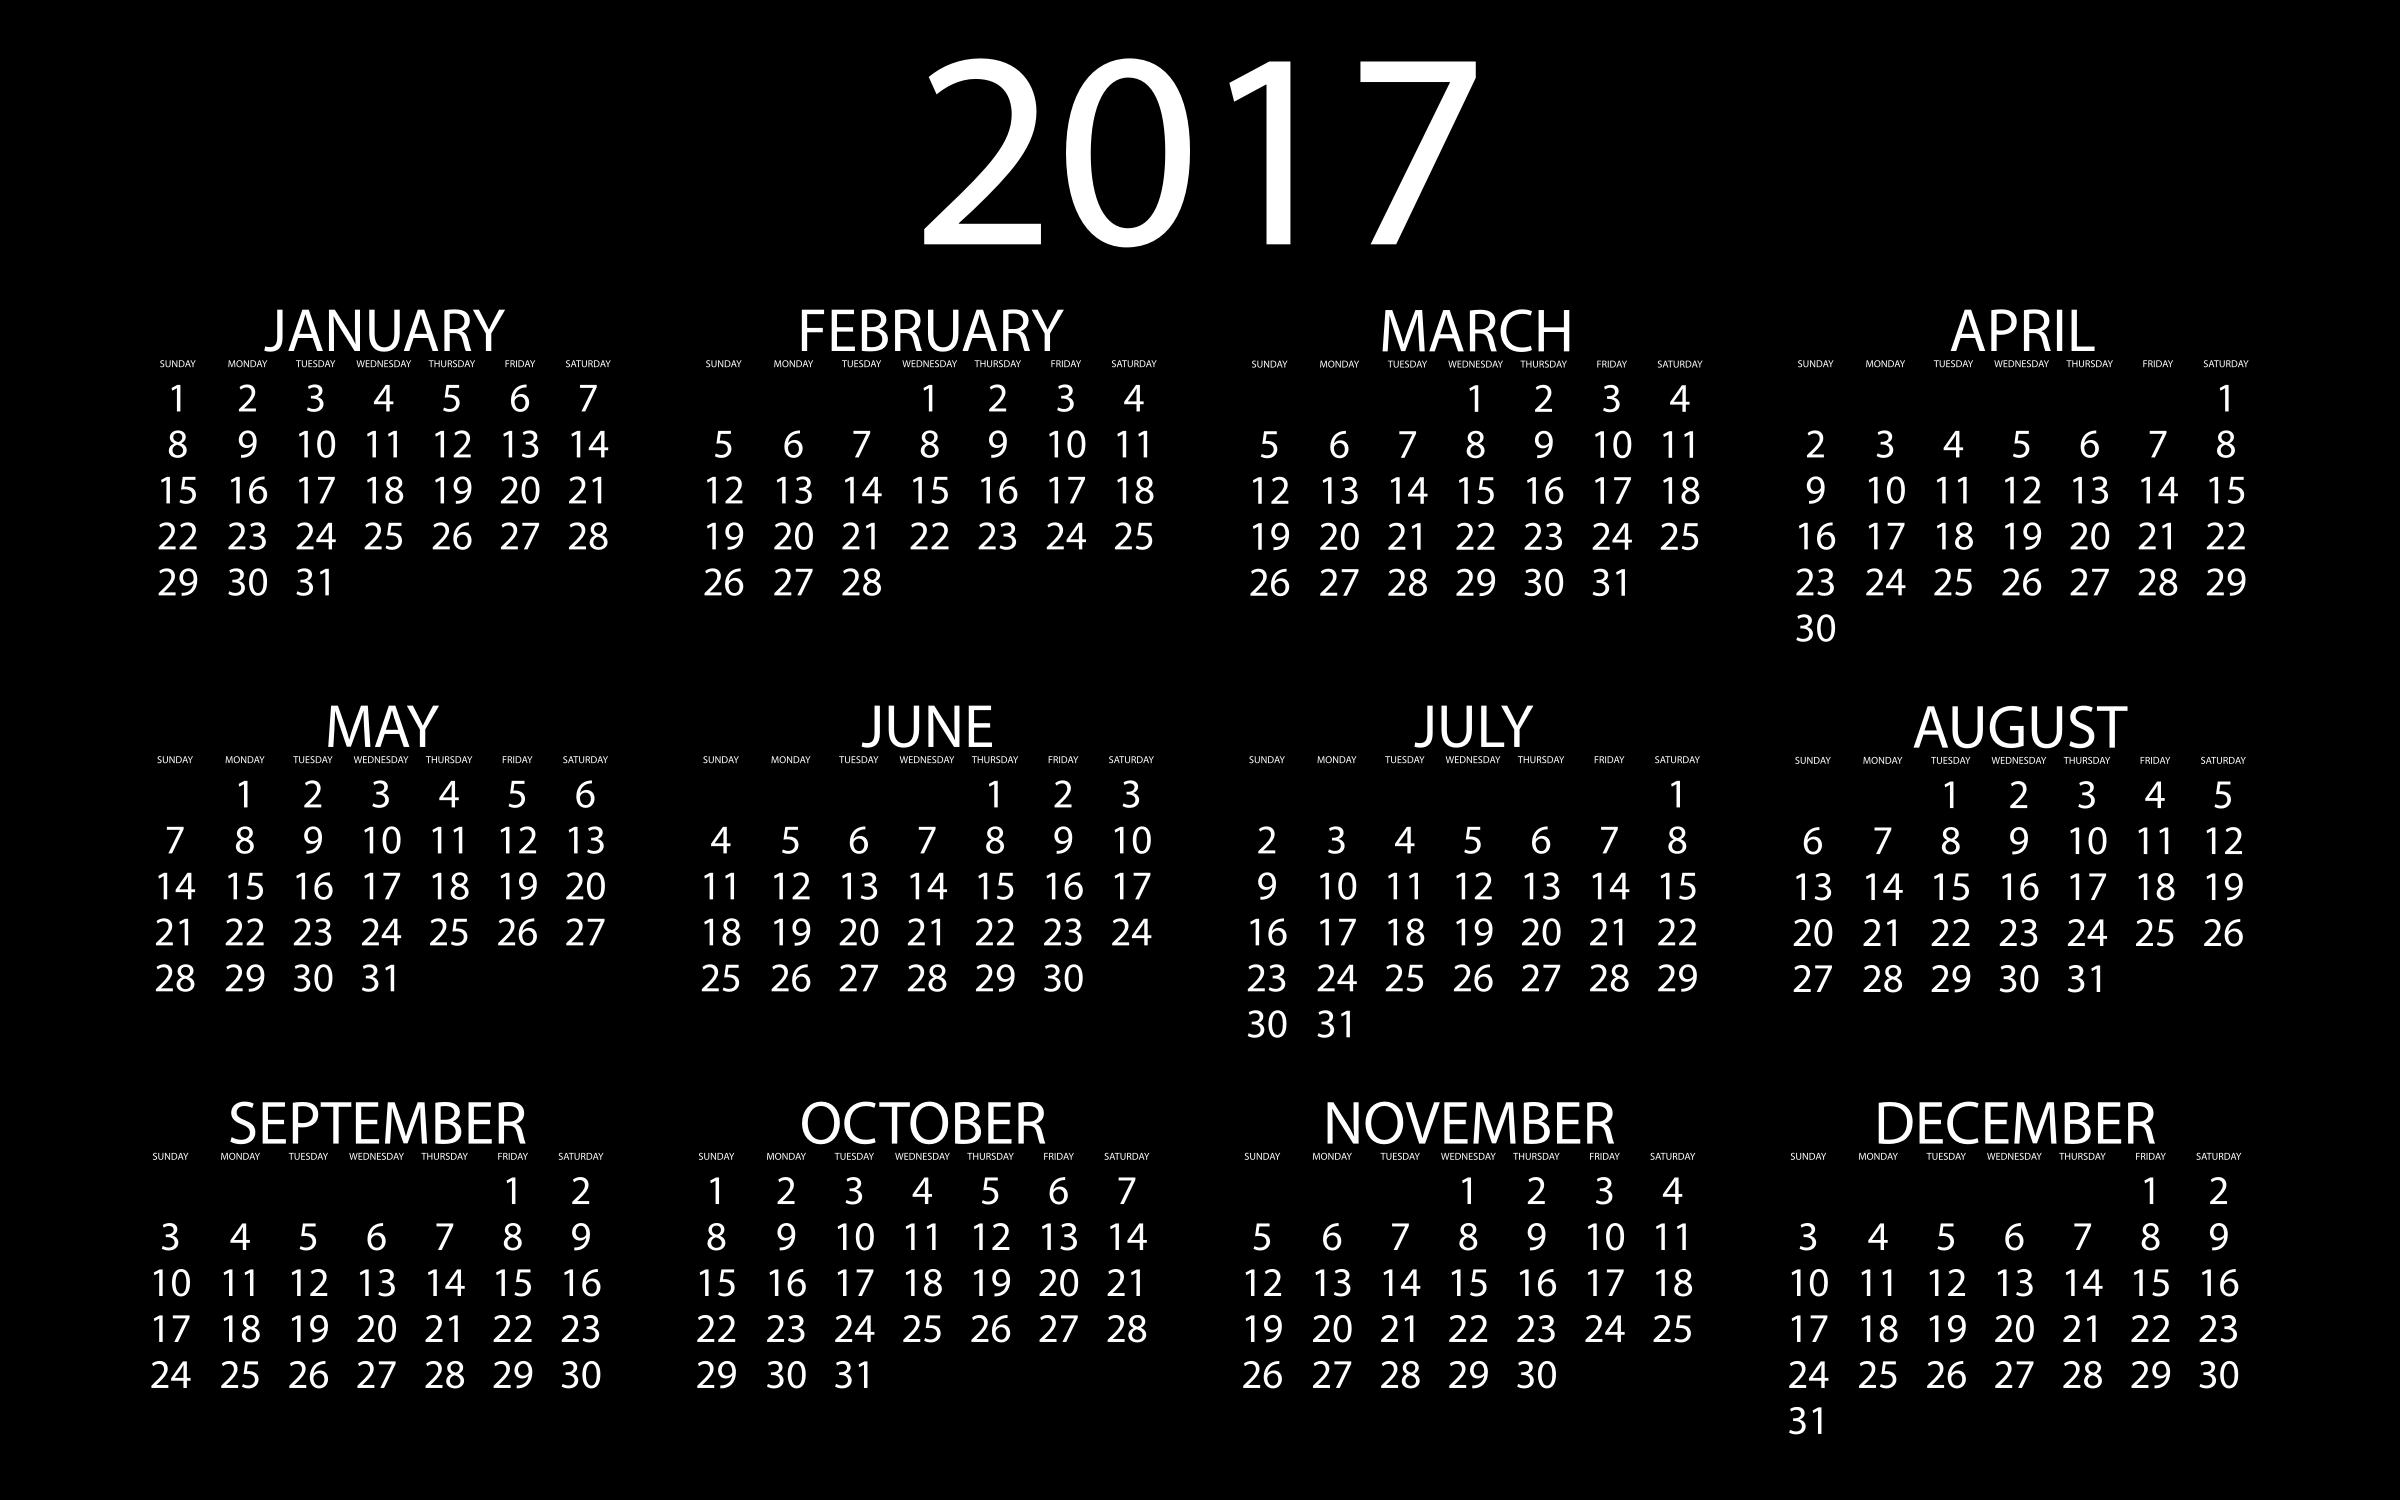 2017 Calendar Inverse With Black Background by GDJ